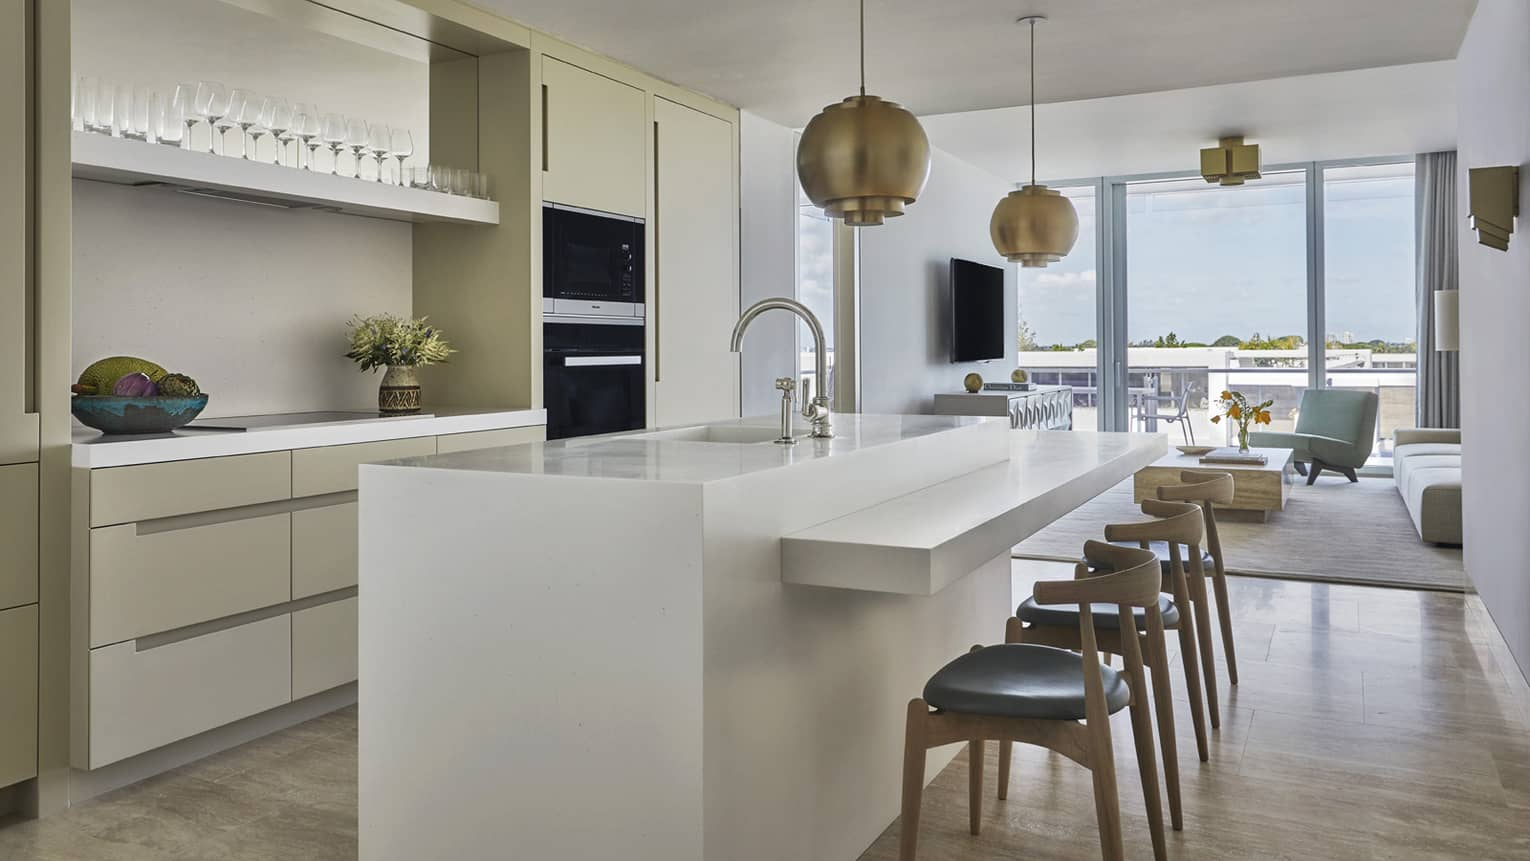 Long white island counter with stools in bright, modern kitchen